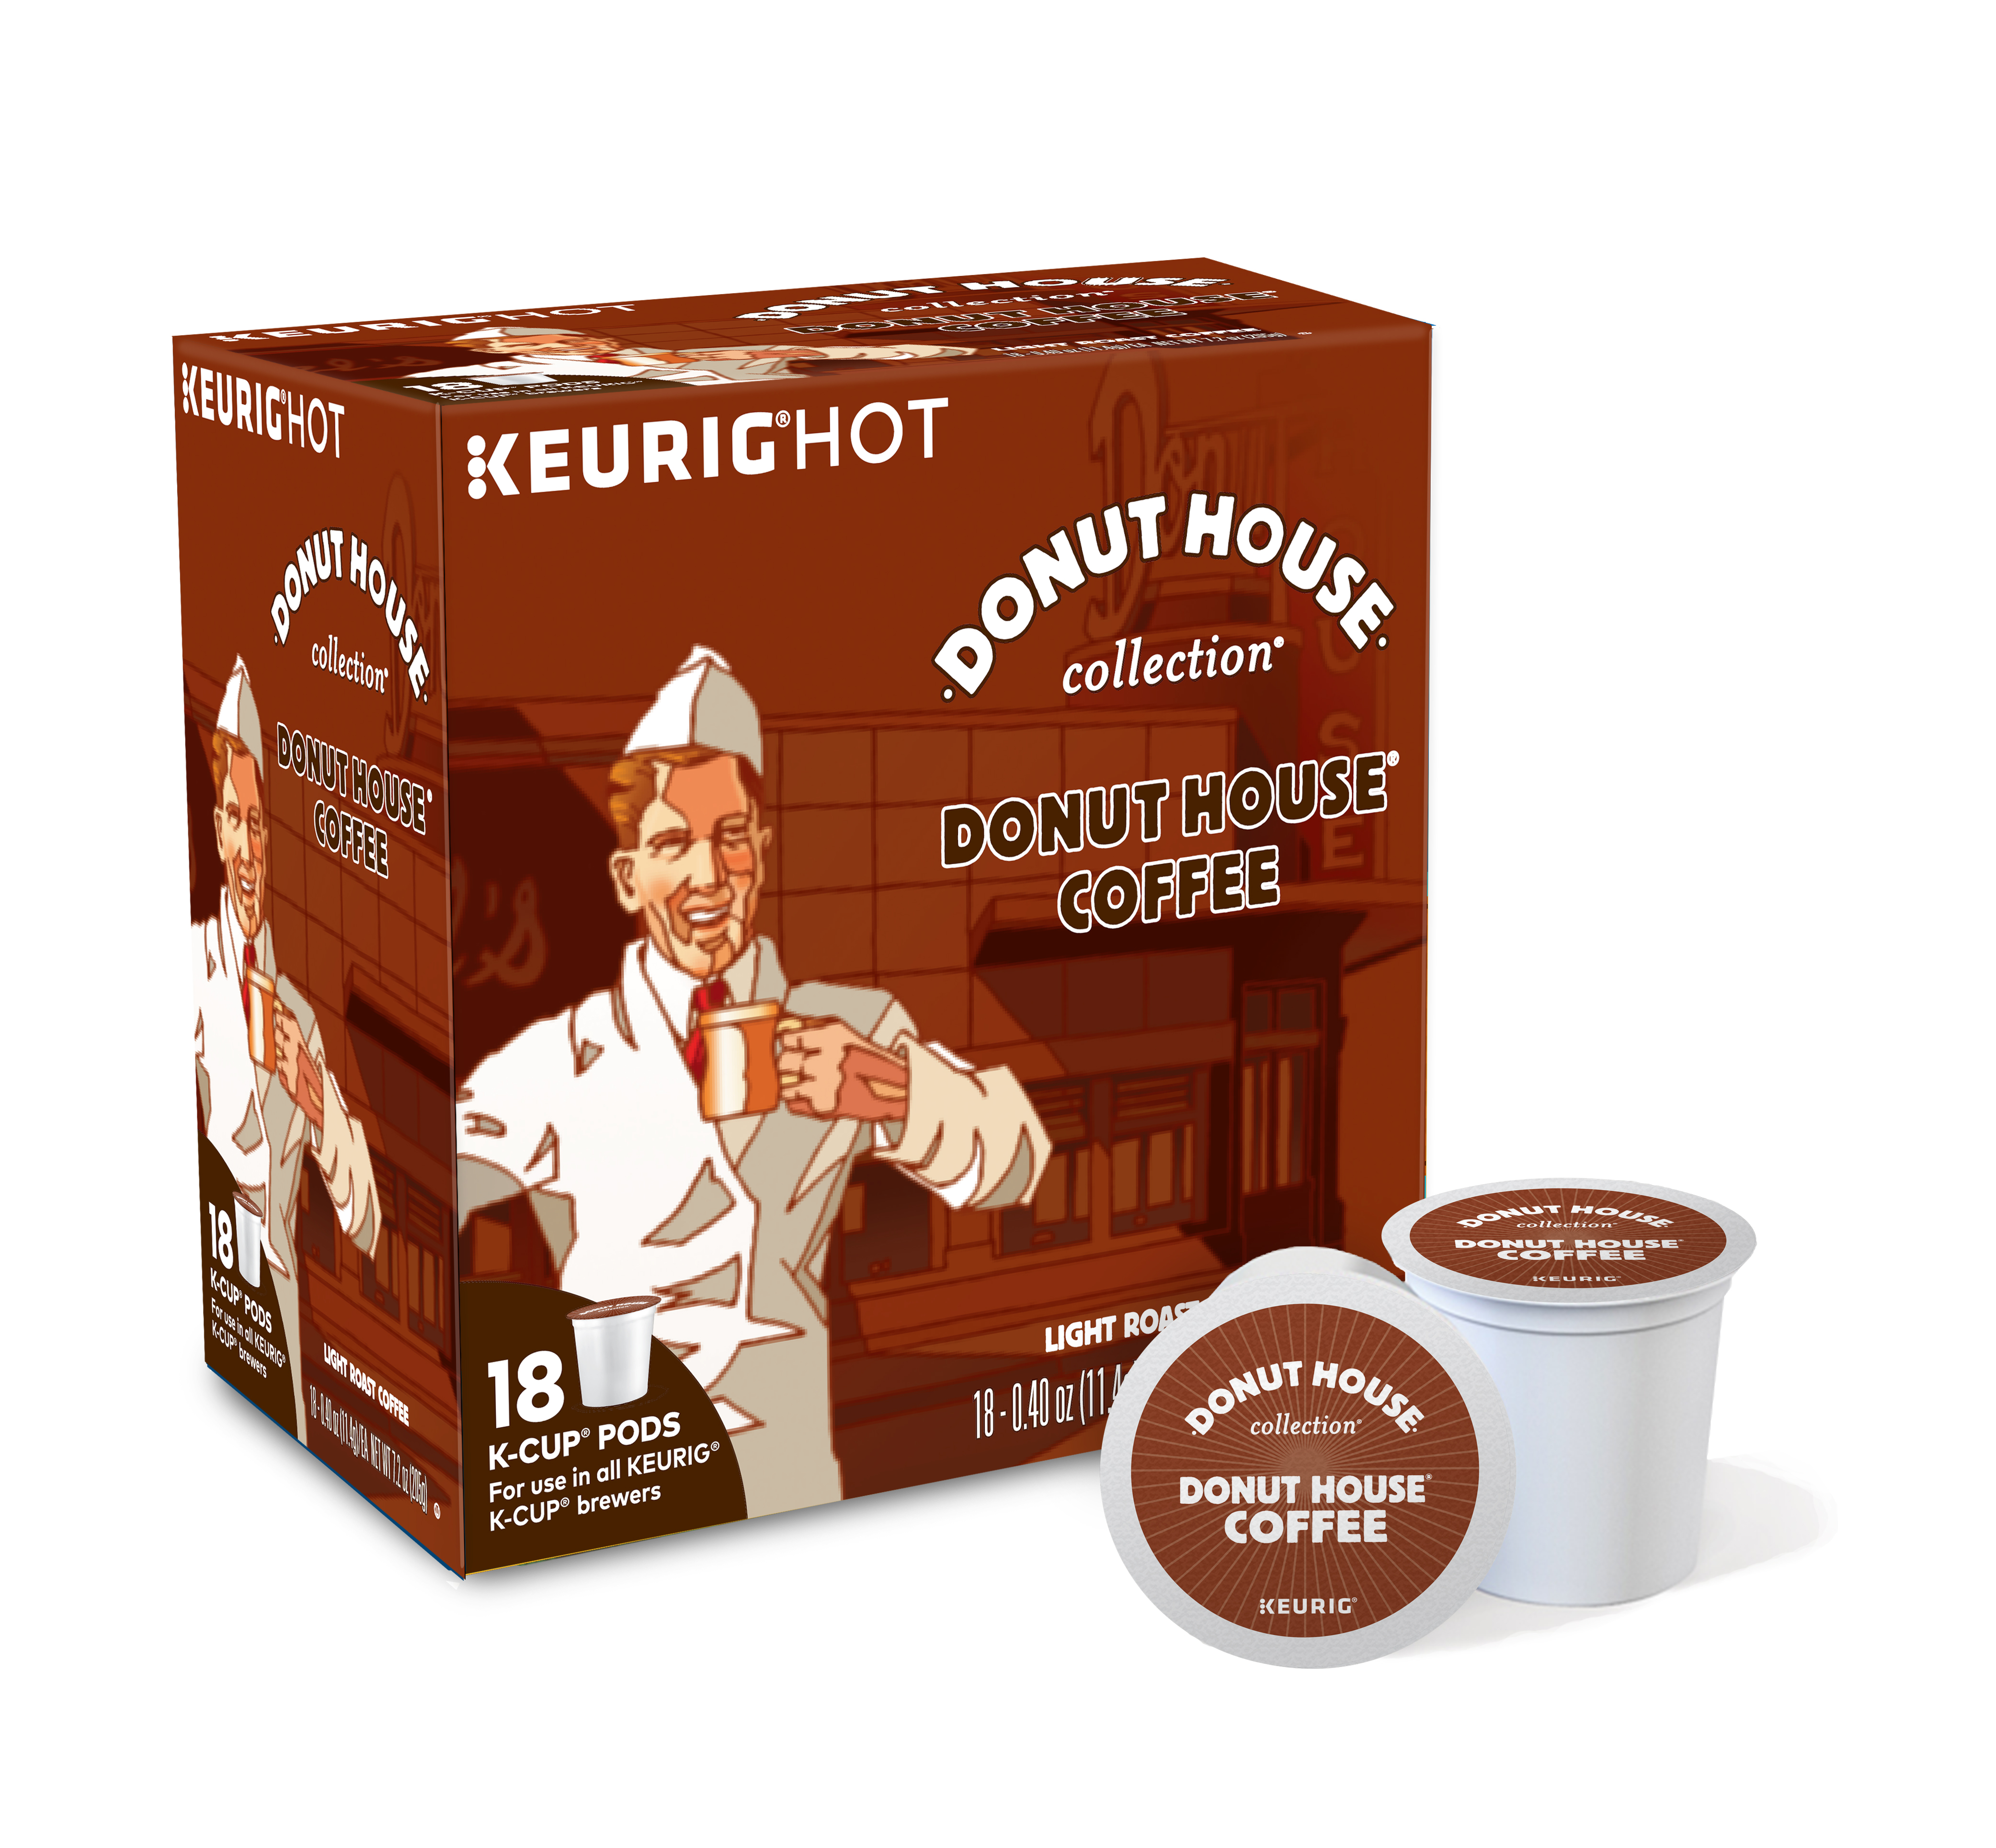 Donut House Collection K-Cup Pods, Light Roast Coffee, 18 Count